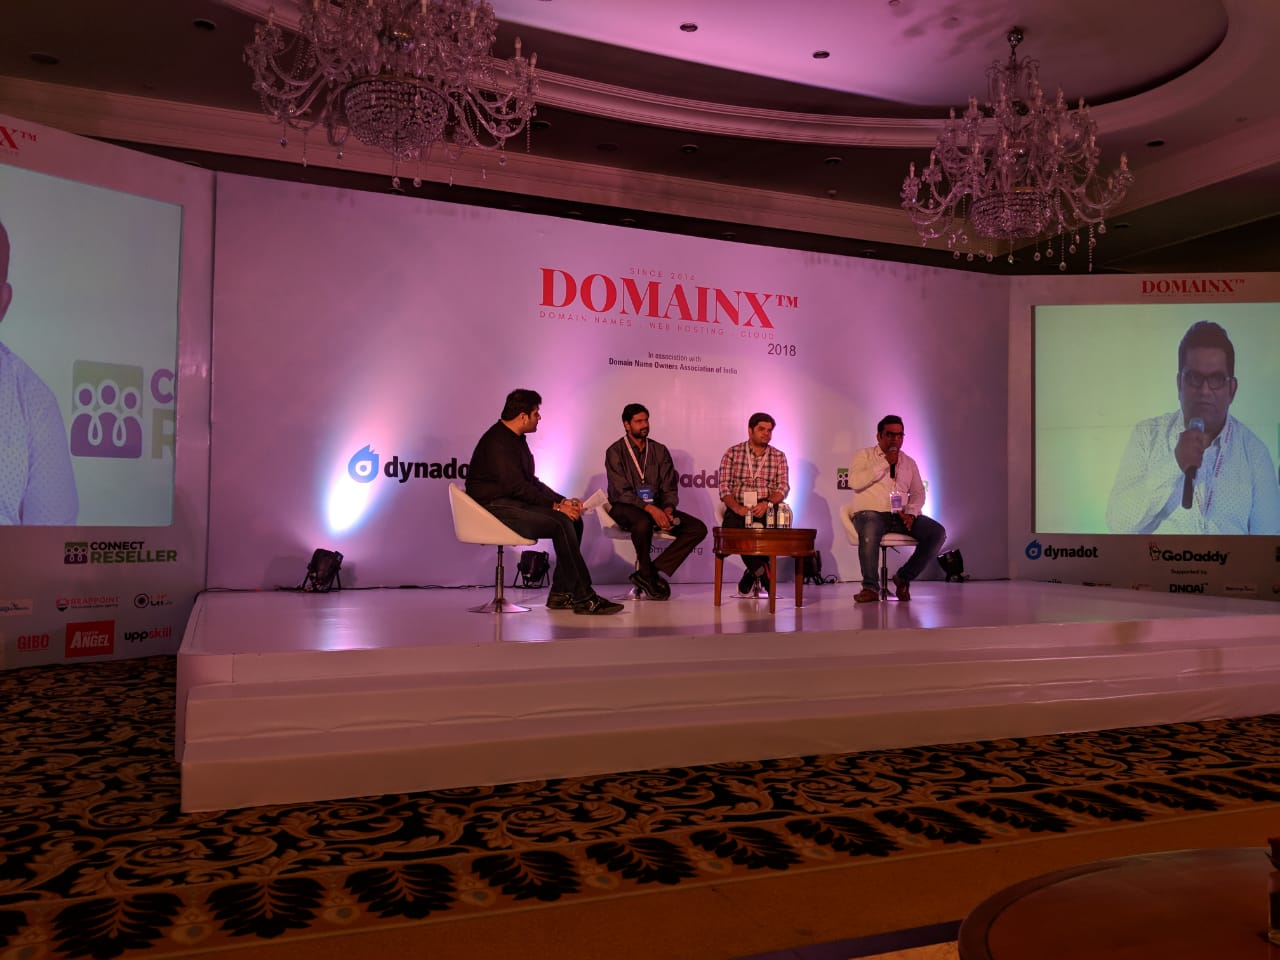 DomainX 2018 - Domain Name Industry Conference - NewDelhi